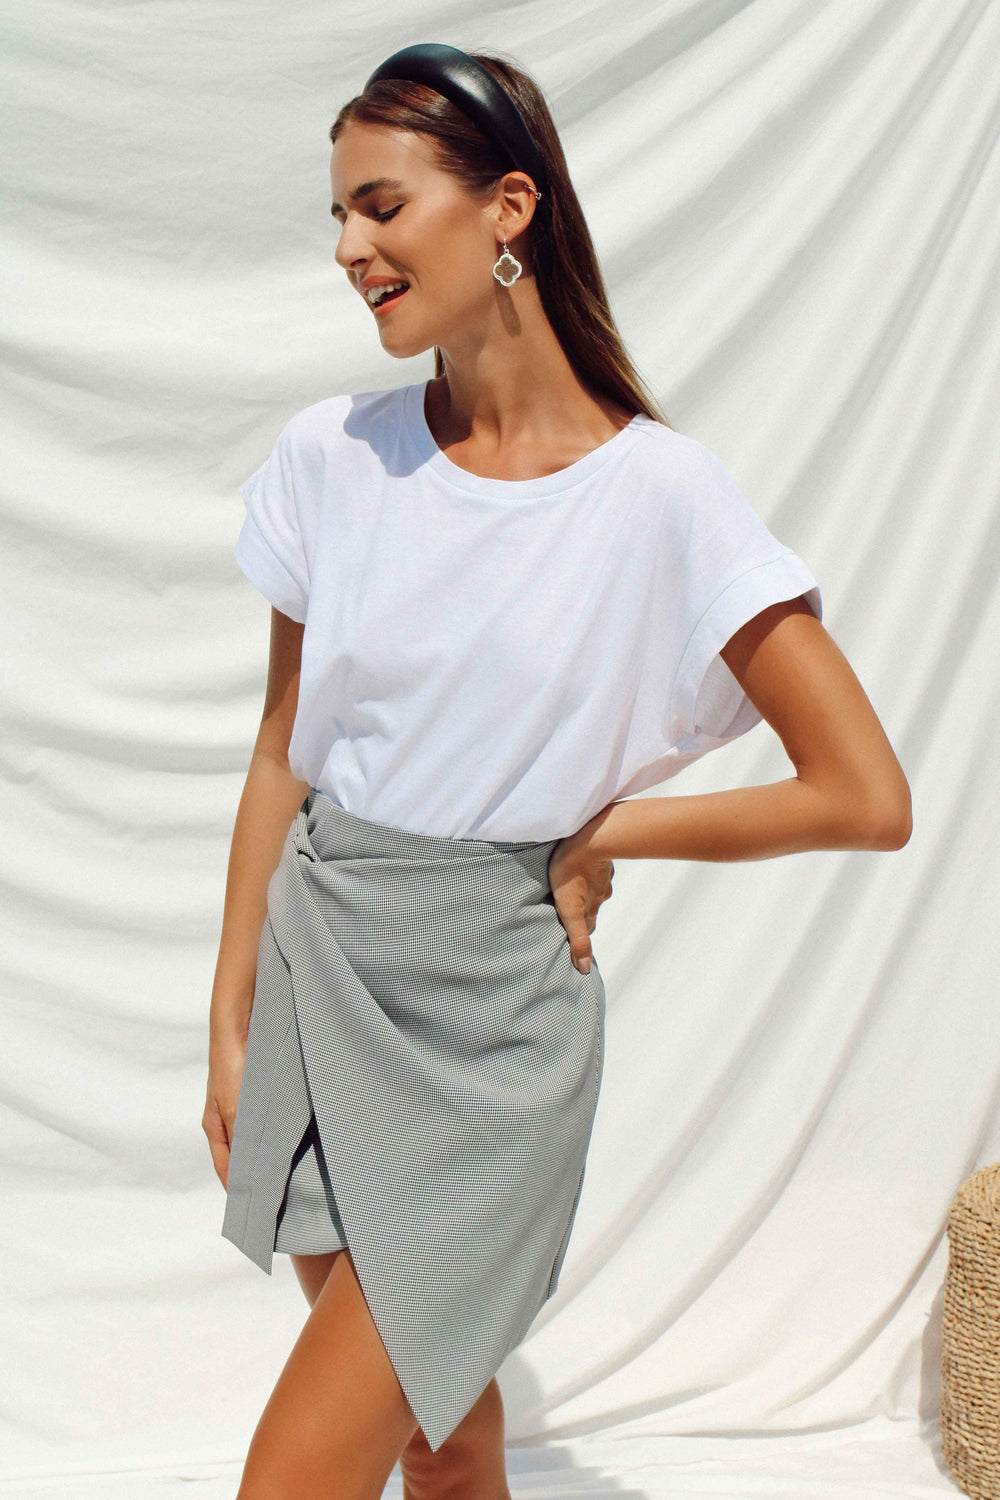 BLAISE SKIRT - Chic Le Frique